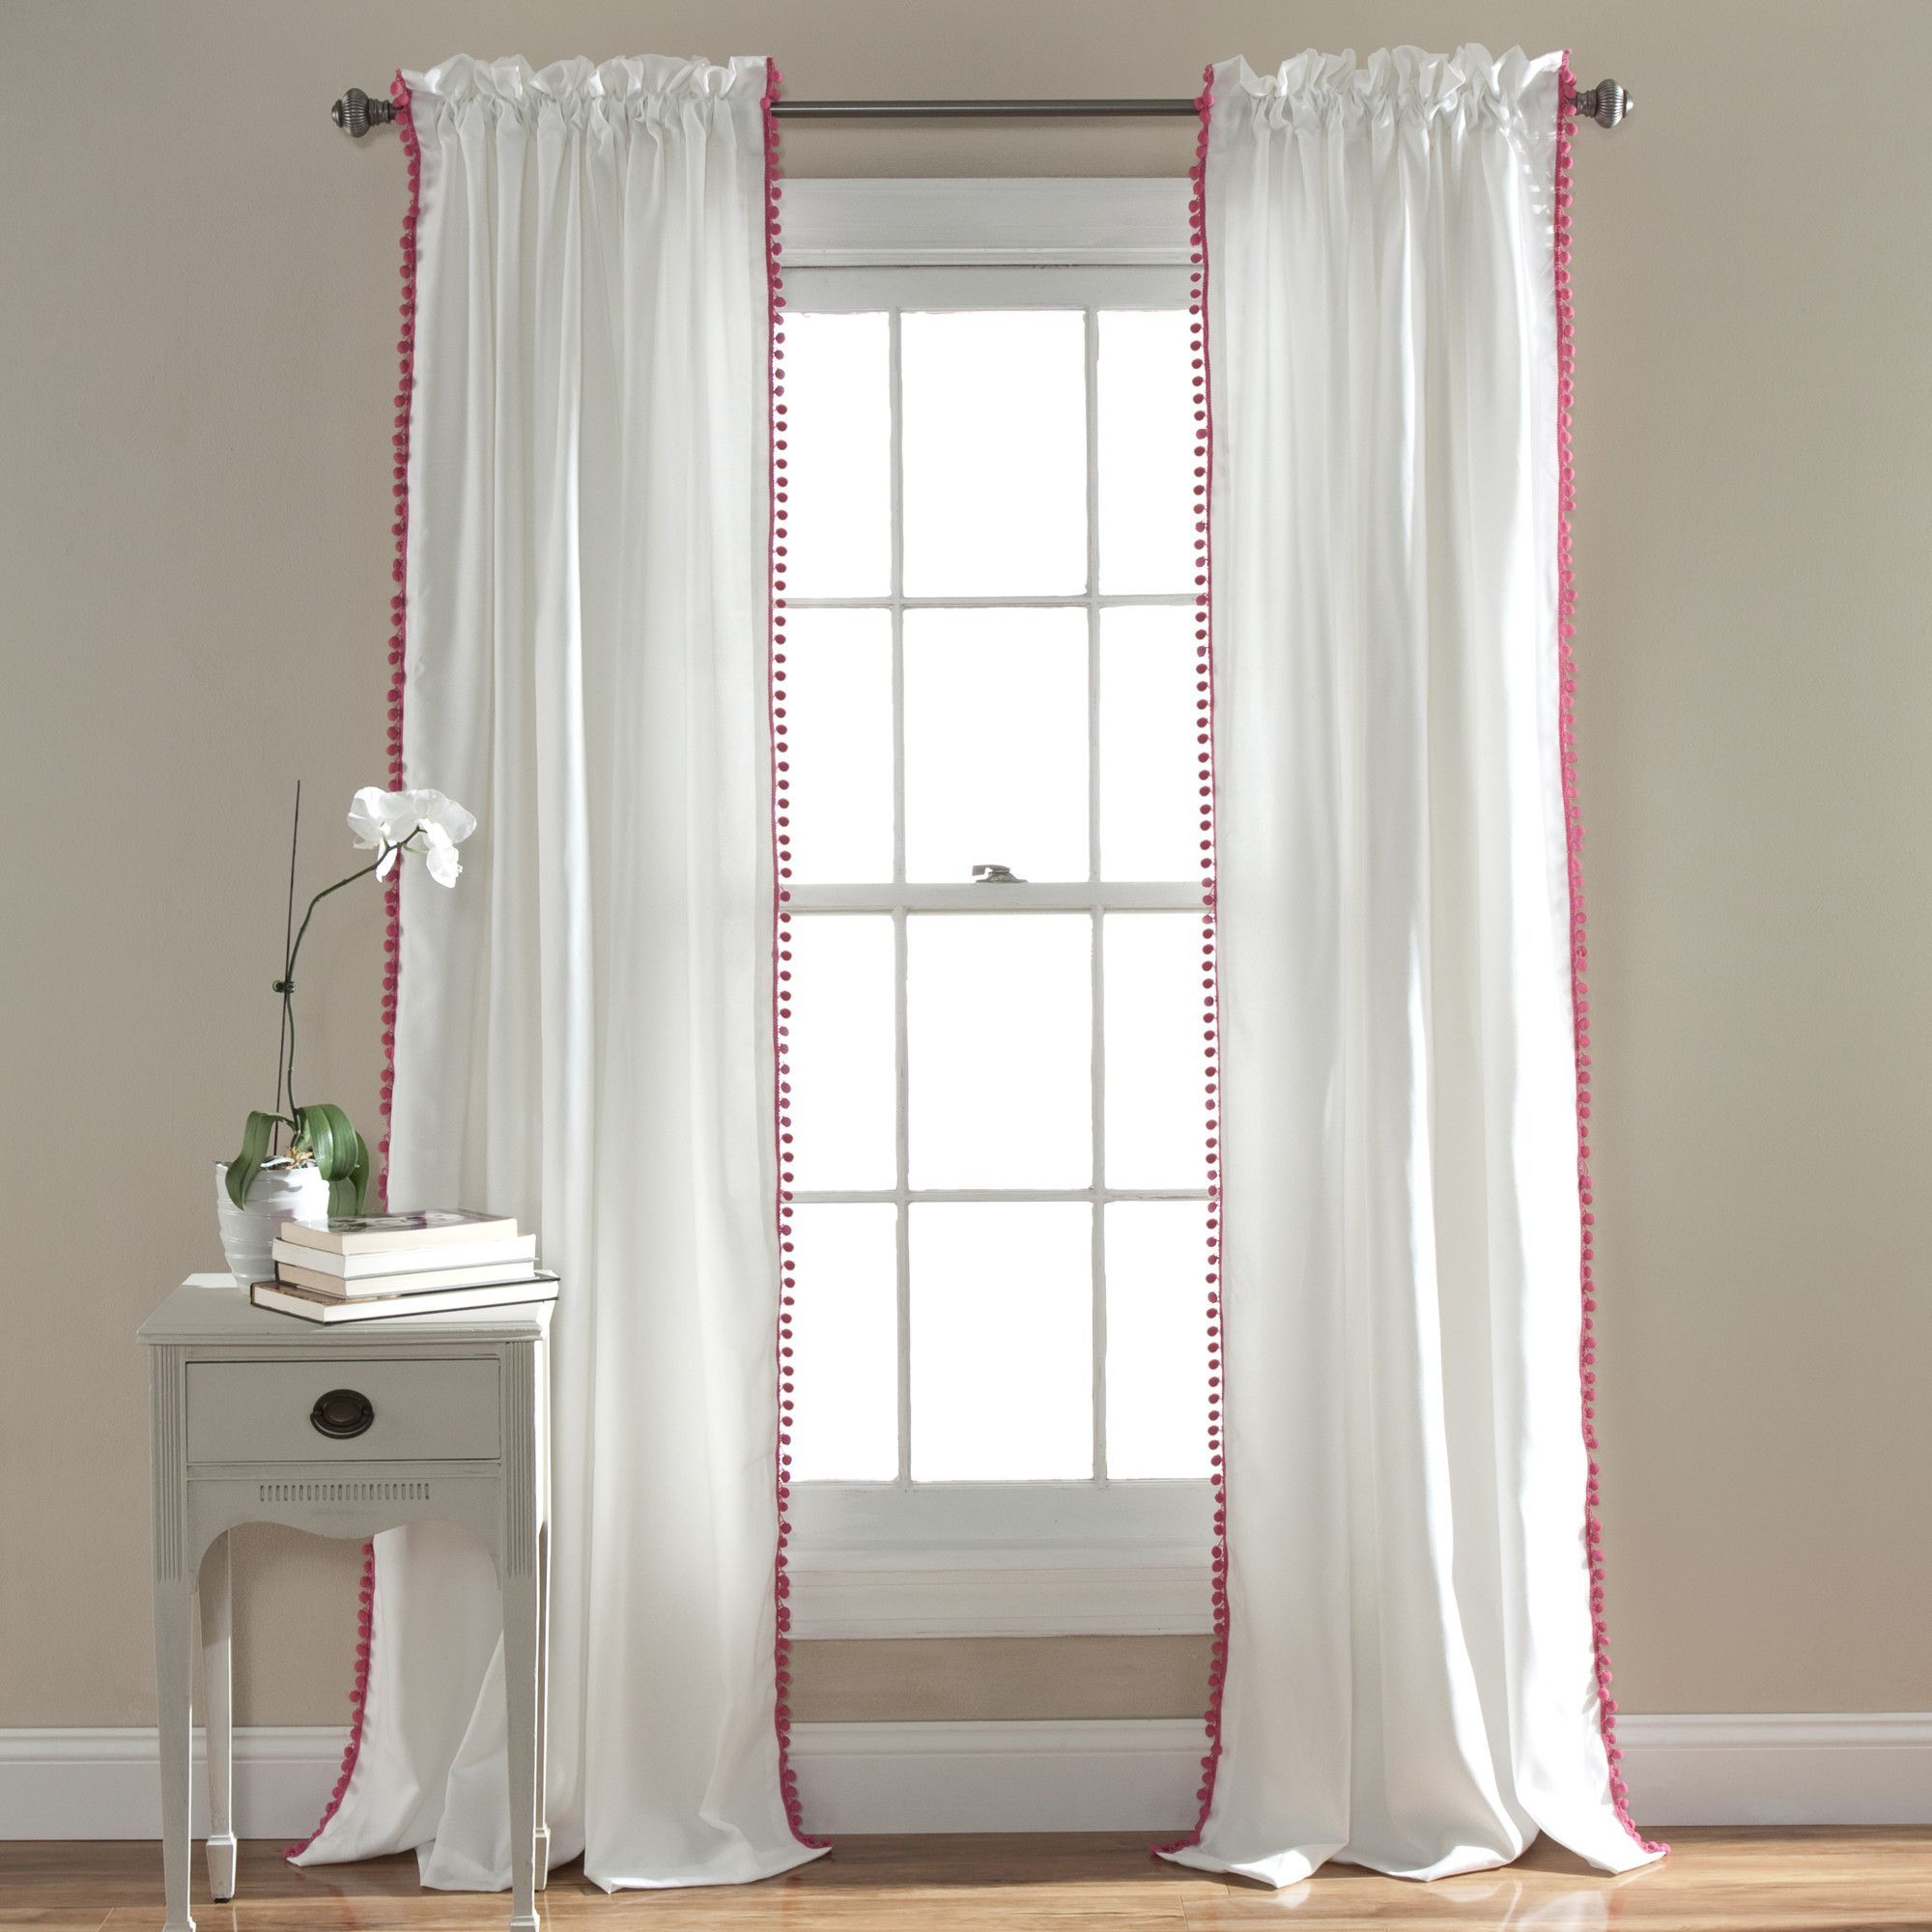 Pom pom single curtain panel curtains pinterest for Drapes over crib